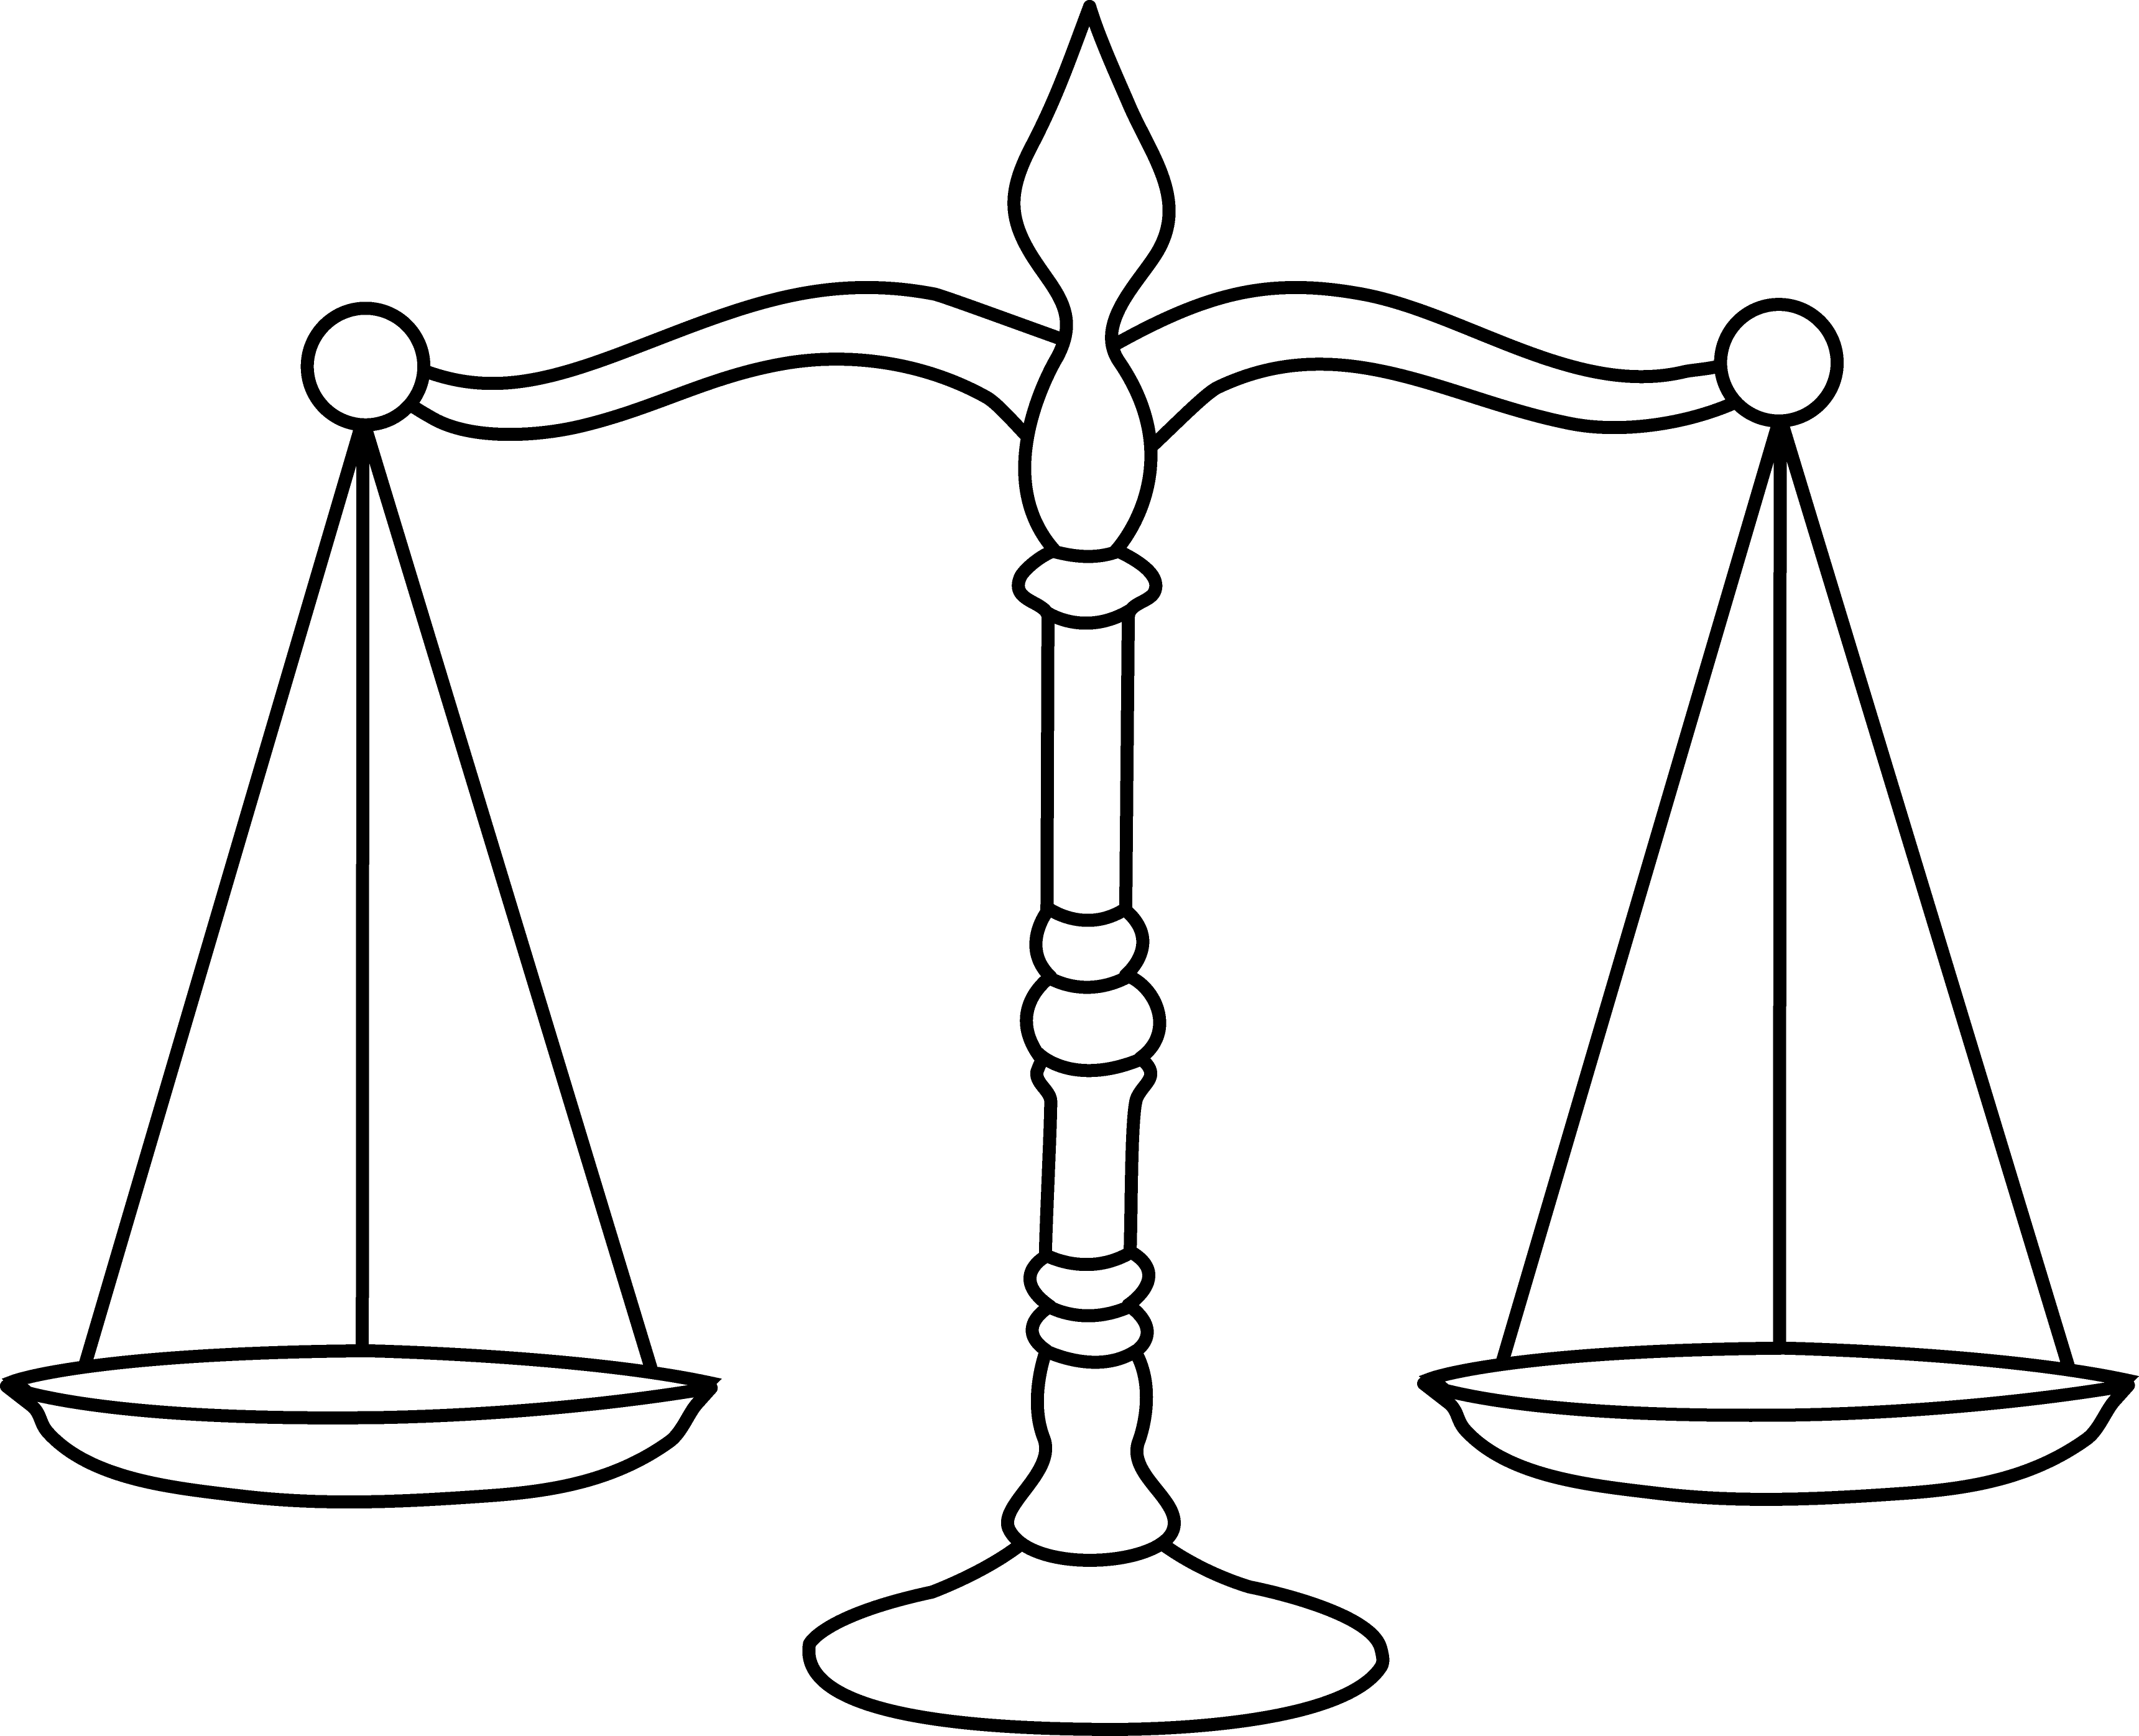 vector transparent download Scale clipart black and white. Legal scales of justice